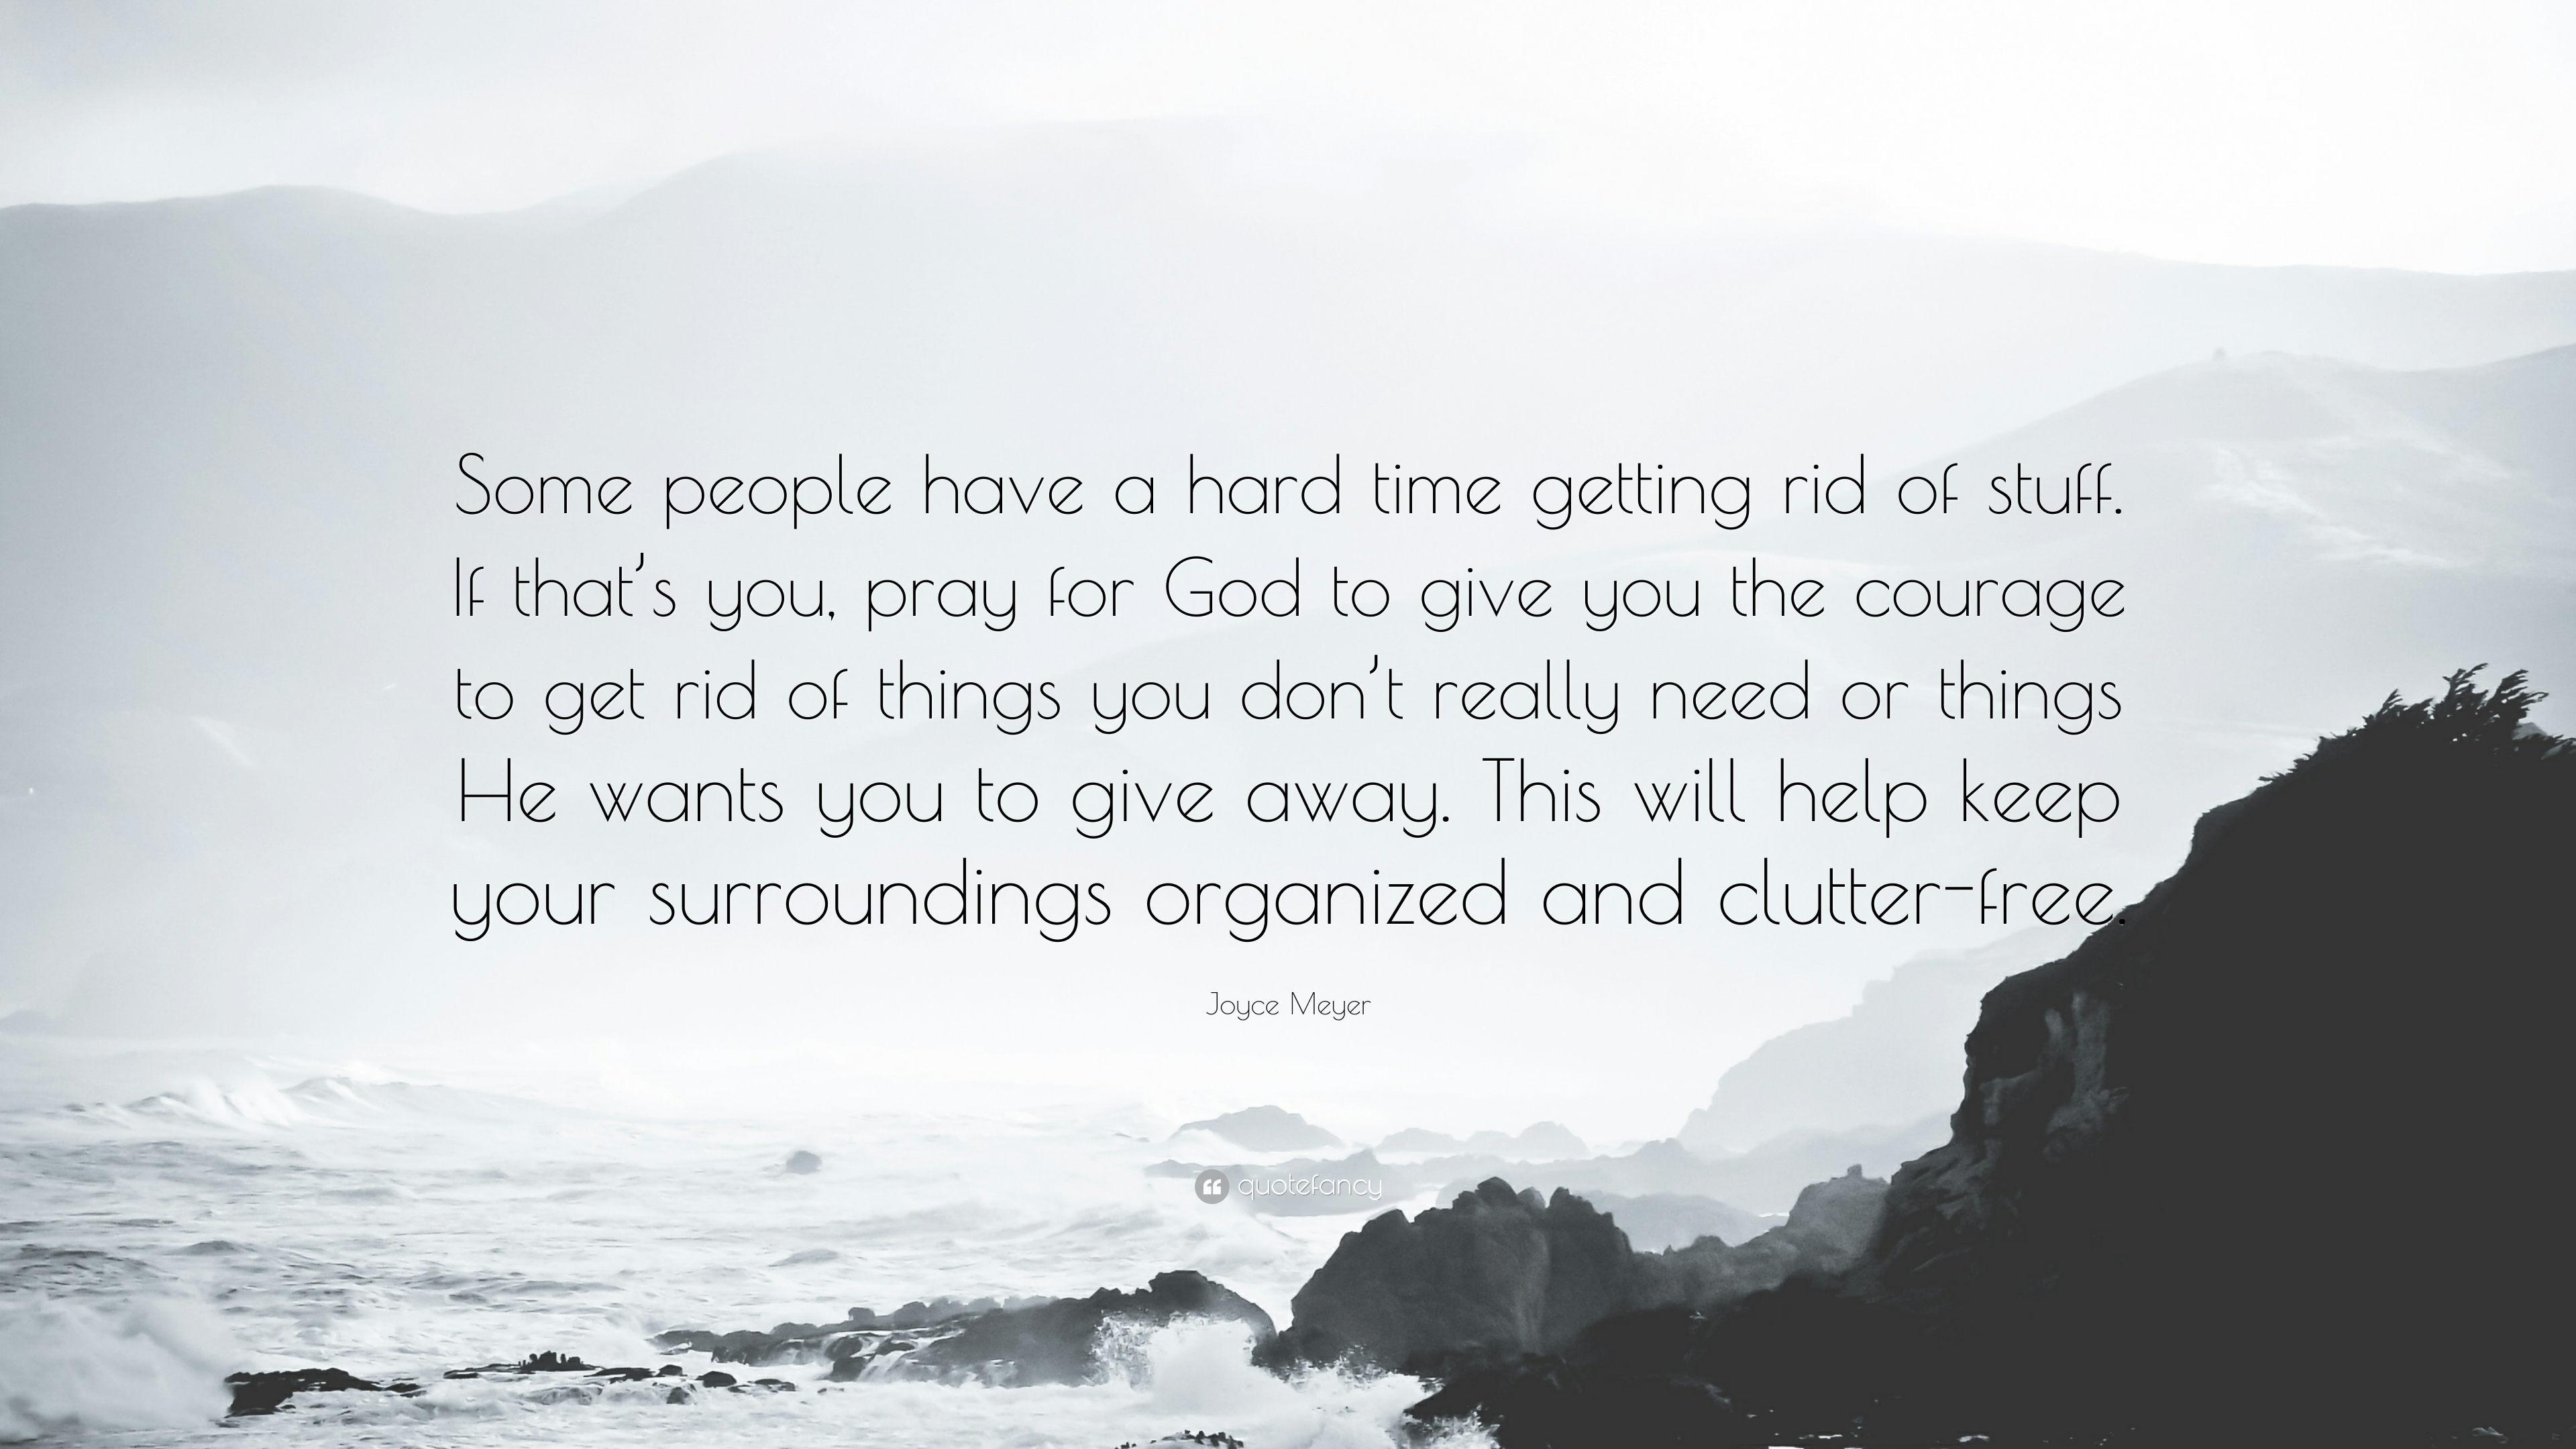 joyce meyer quote u201csome people have a hard time getting rid of